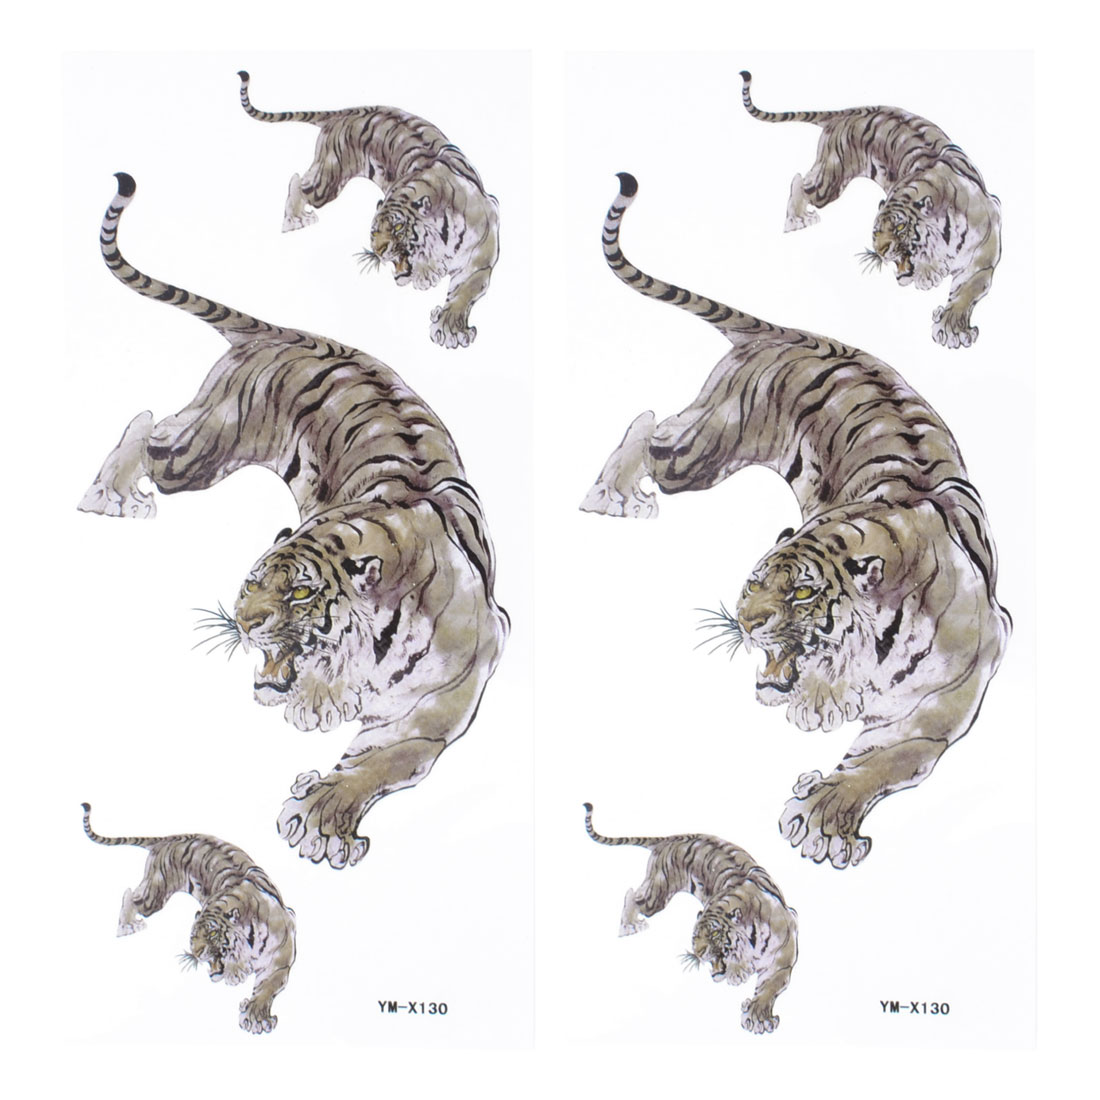 Brown Different Size Tiger Pattern Transferable Skin Tattoos Decals Stickers 2Pcs